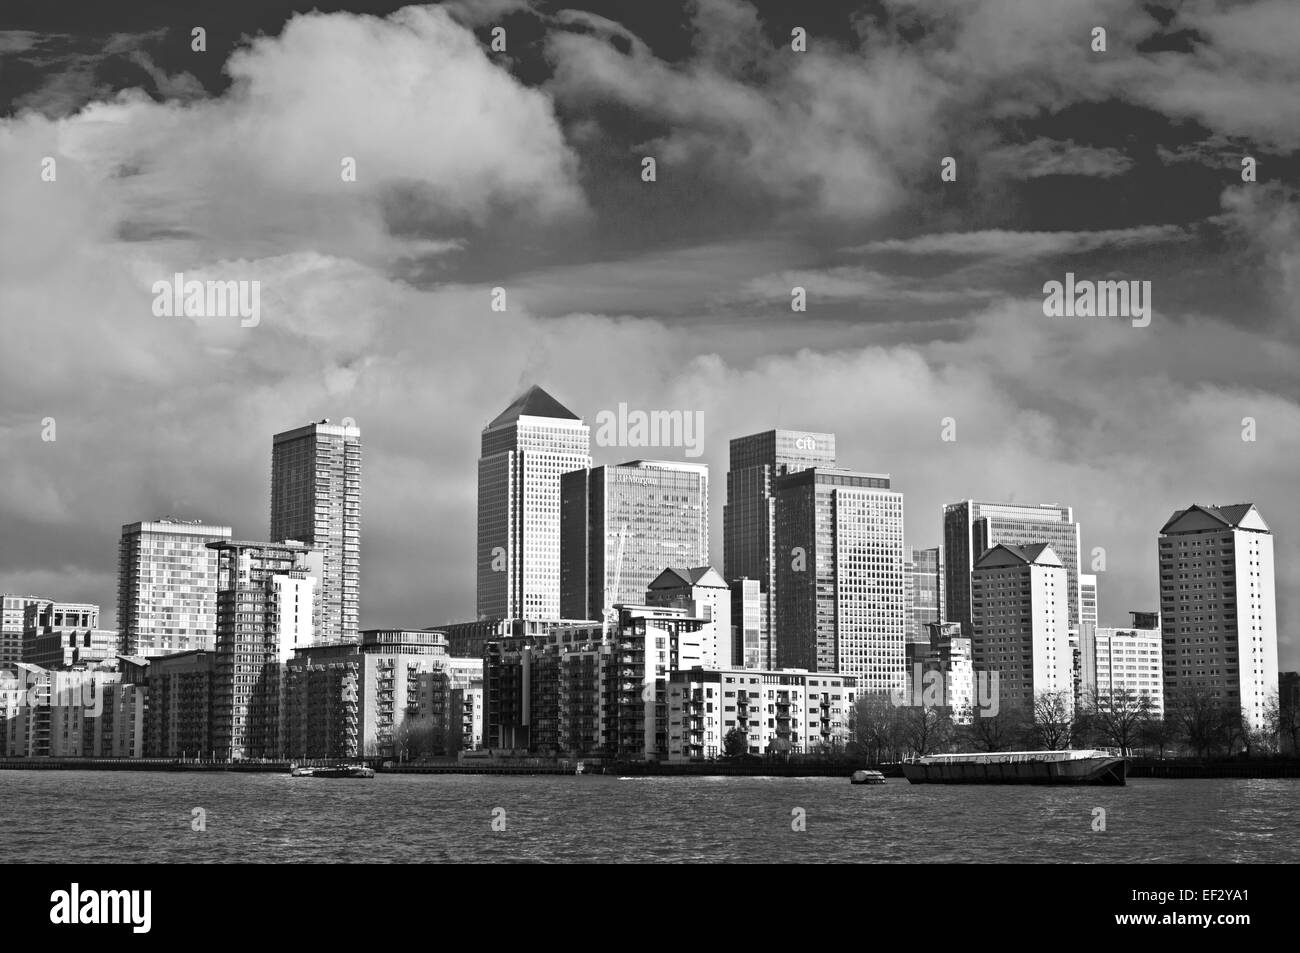 Black and white view of Canary Wharf seen from the River Thames, London, England UK - Stock Image